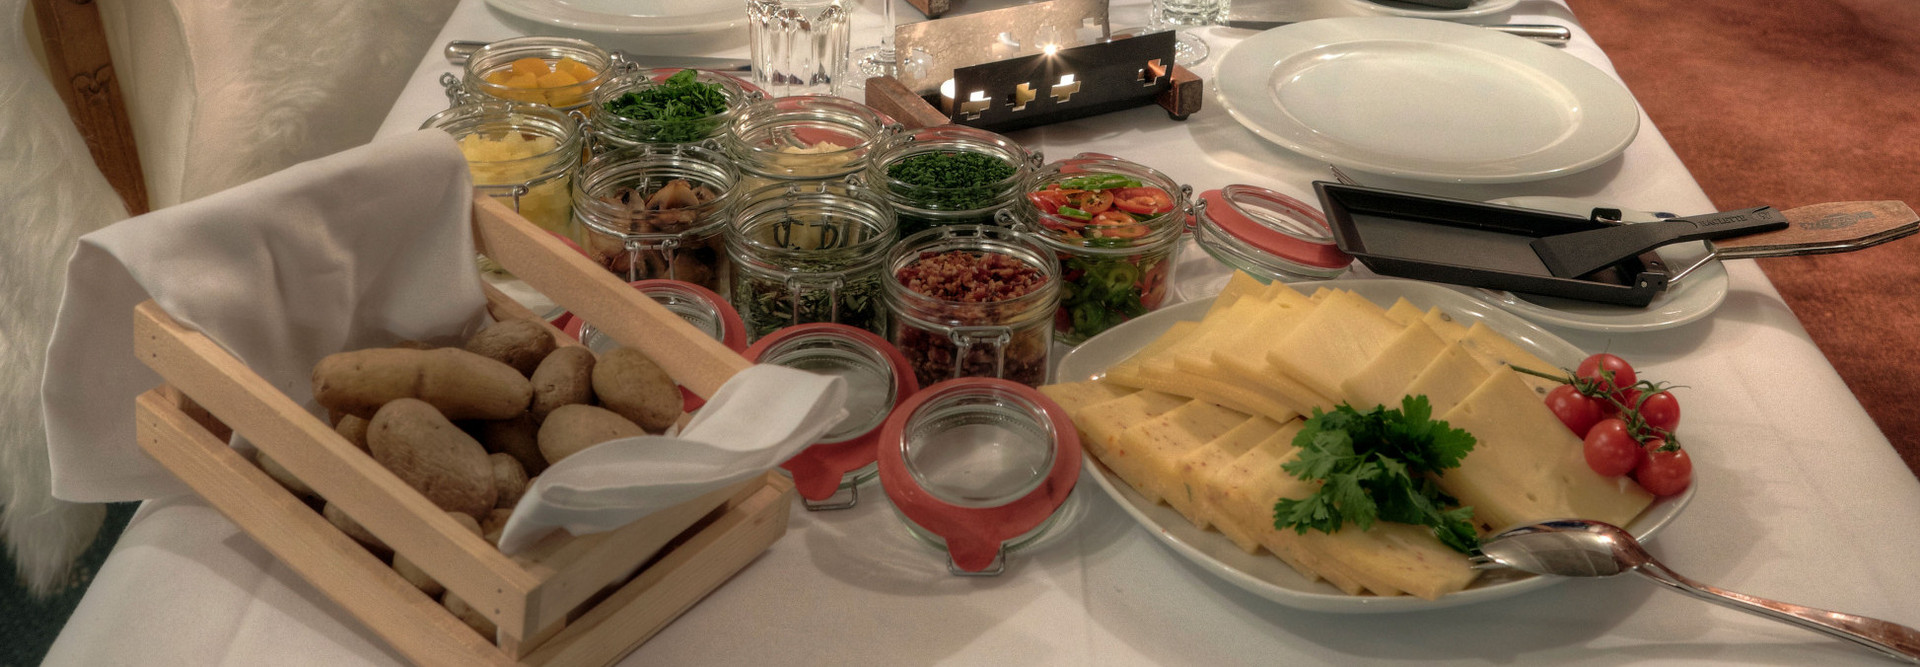 The table is set with many delicious side dishes